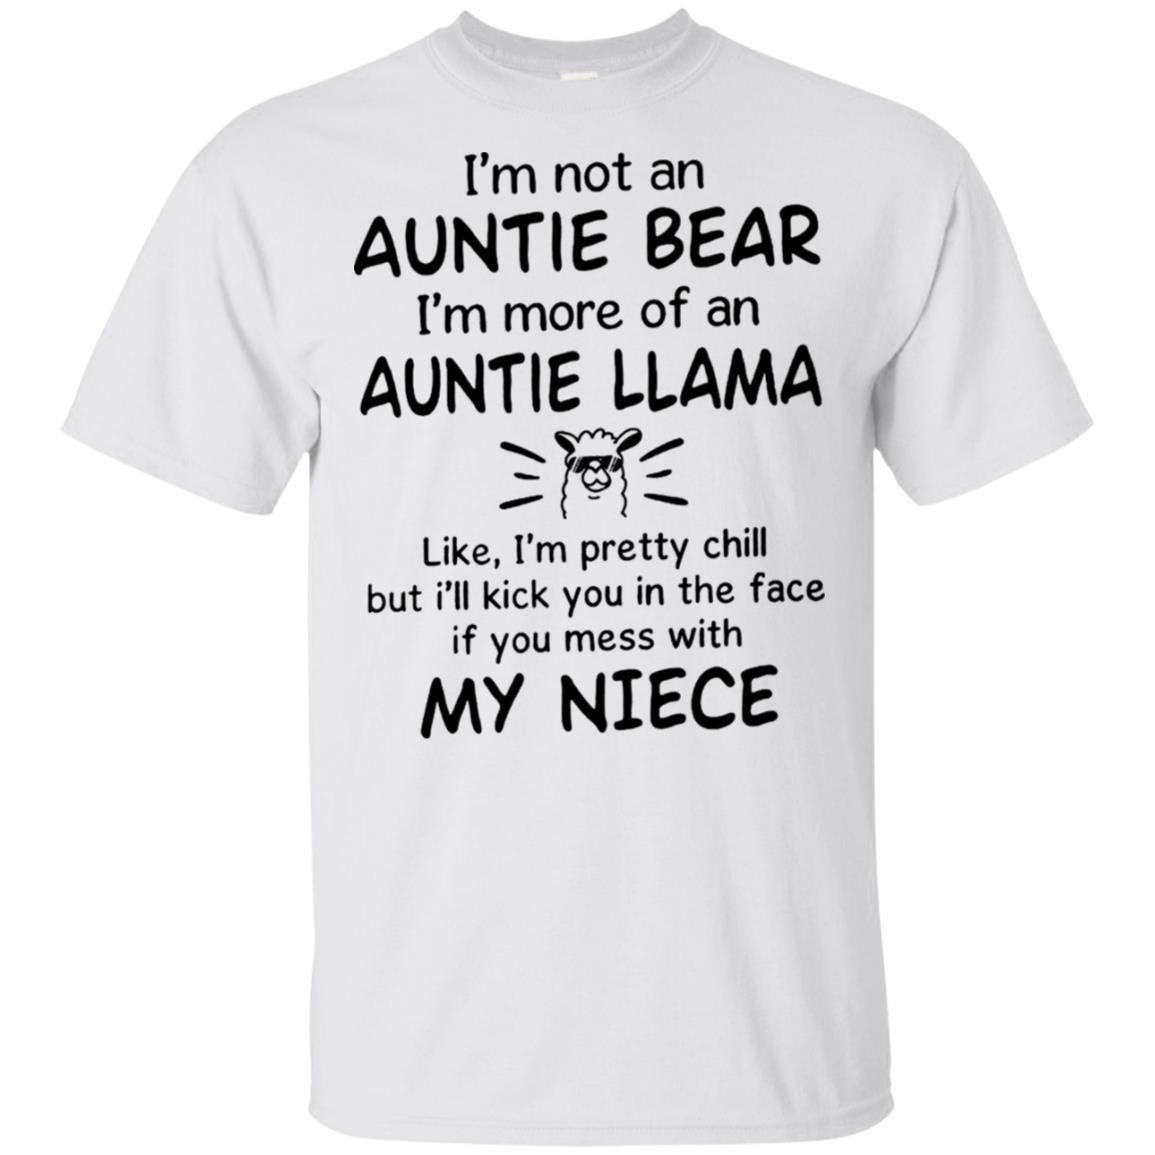 I'm Not an Auntie Bear I'm More of an Auntie Llama T-shirt